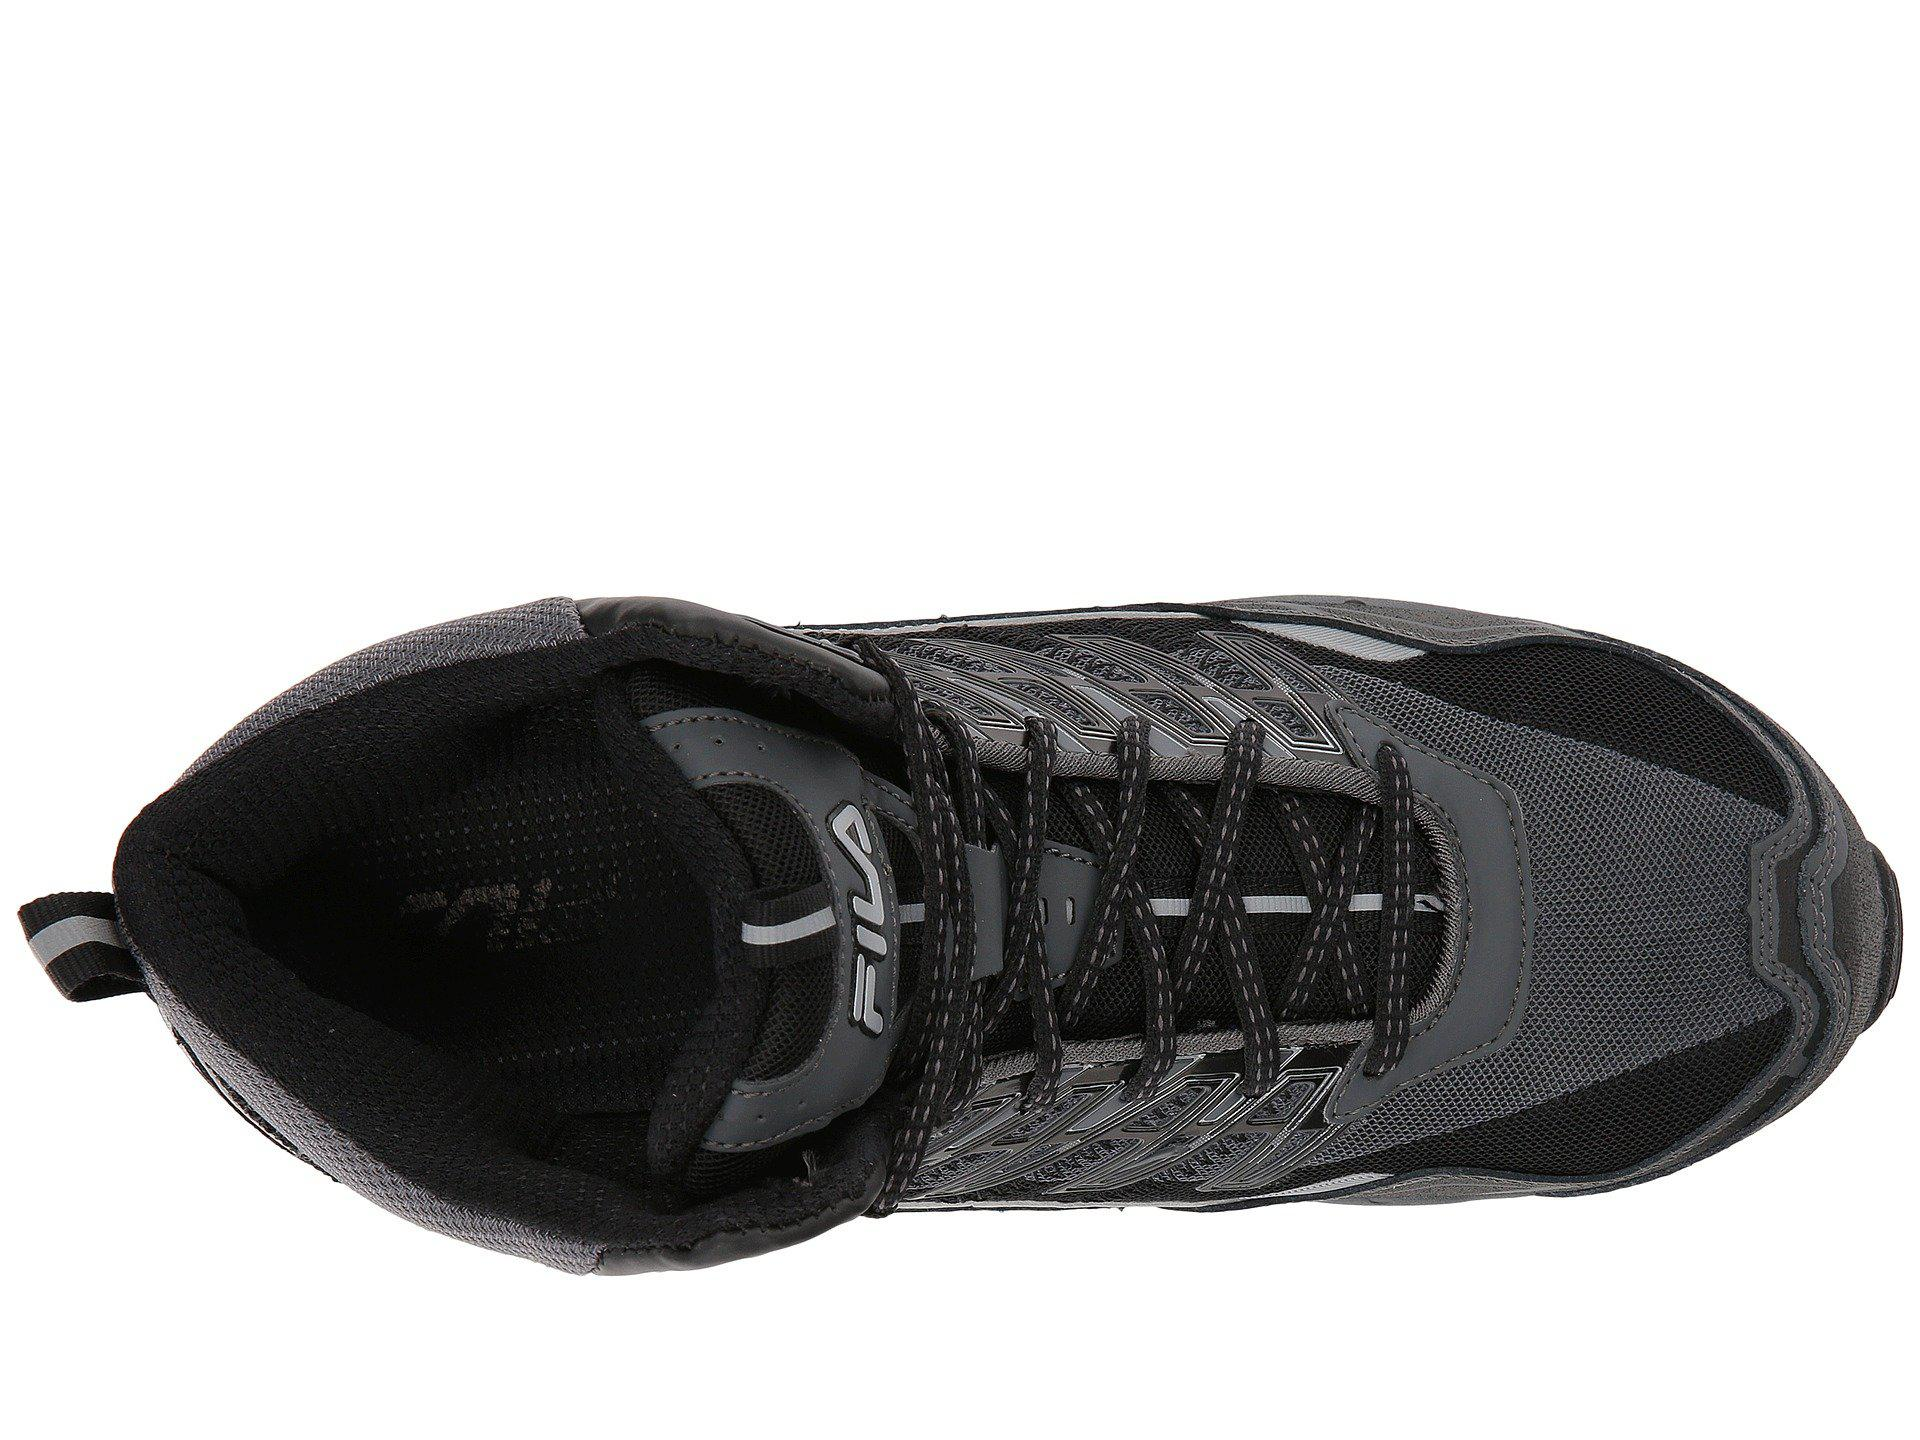 ec9e02f0a915 Fila - Black Hail Storm 3 Mid Composite Toe Trail for Men - Lyst. View  fullscreen